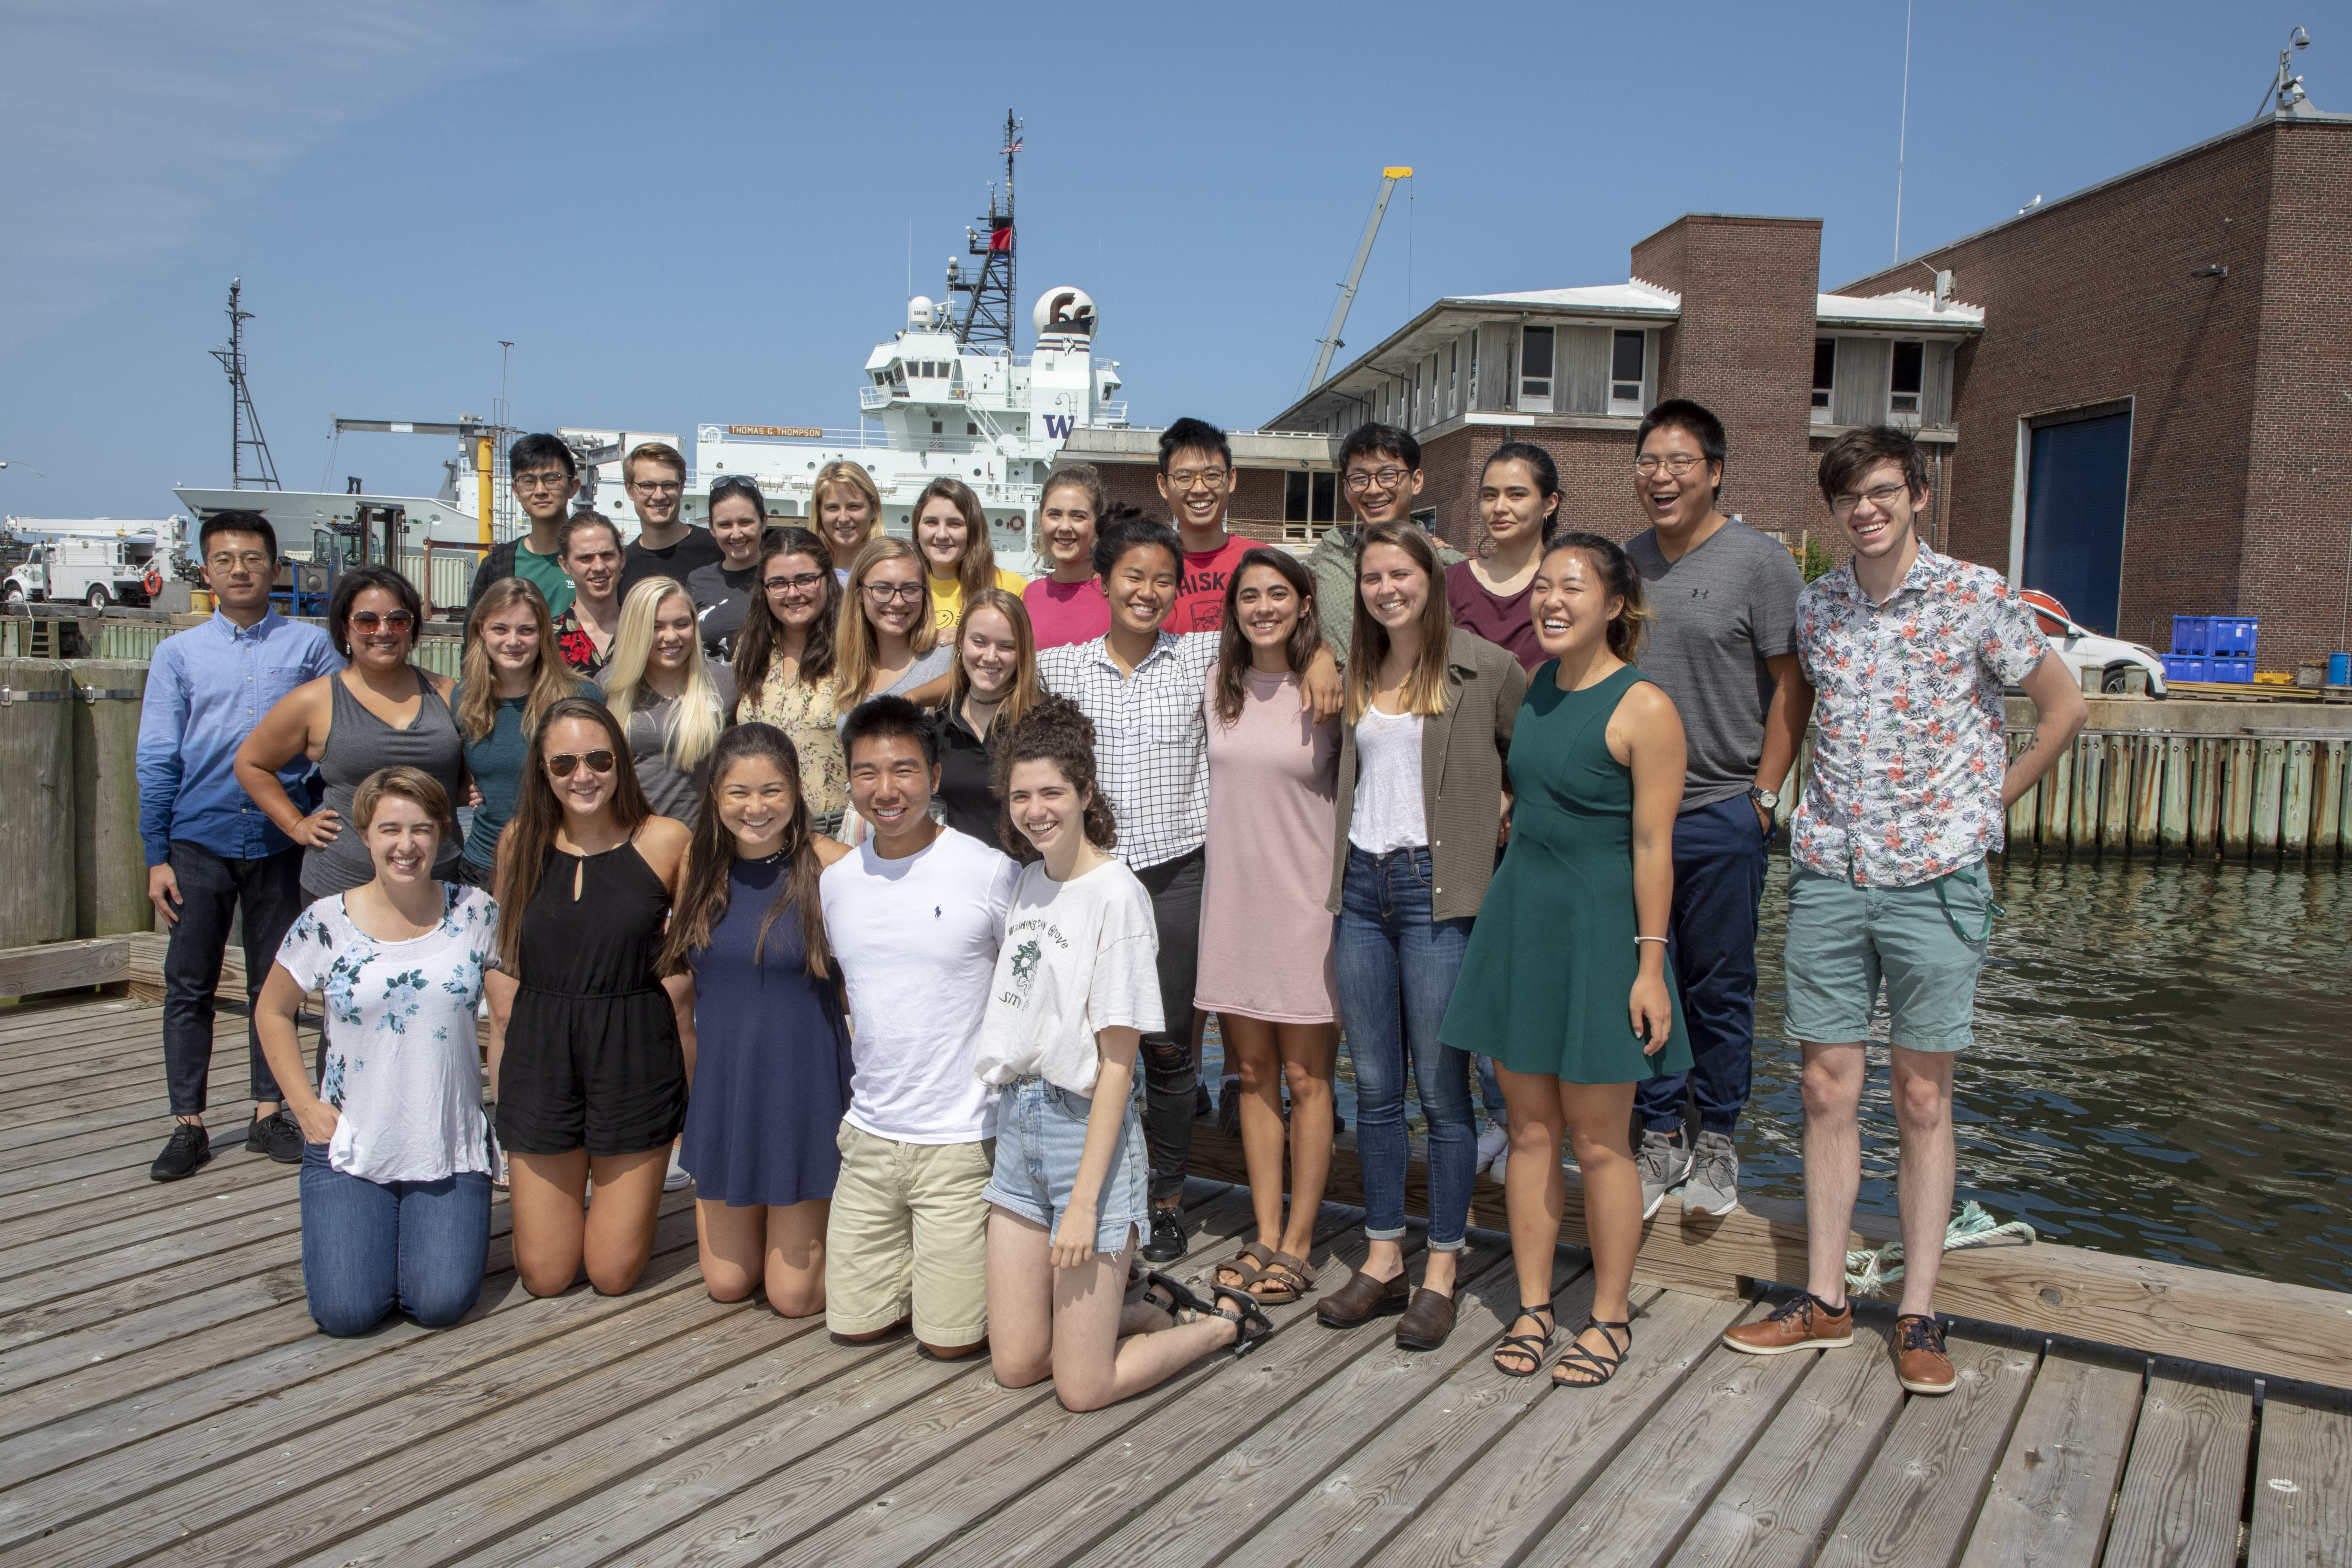 2019 Summer Student Fellows. WHOI Summer Fellowships are designed to give undergraduates hands-on experience in a broad spectrum of ocean science research. (Tom Kleindinst, Woods Hole Oceanographic Institution)